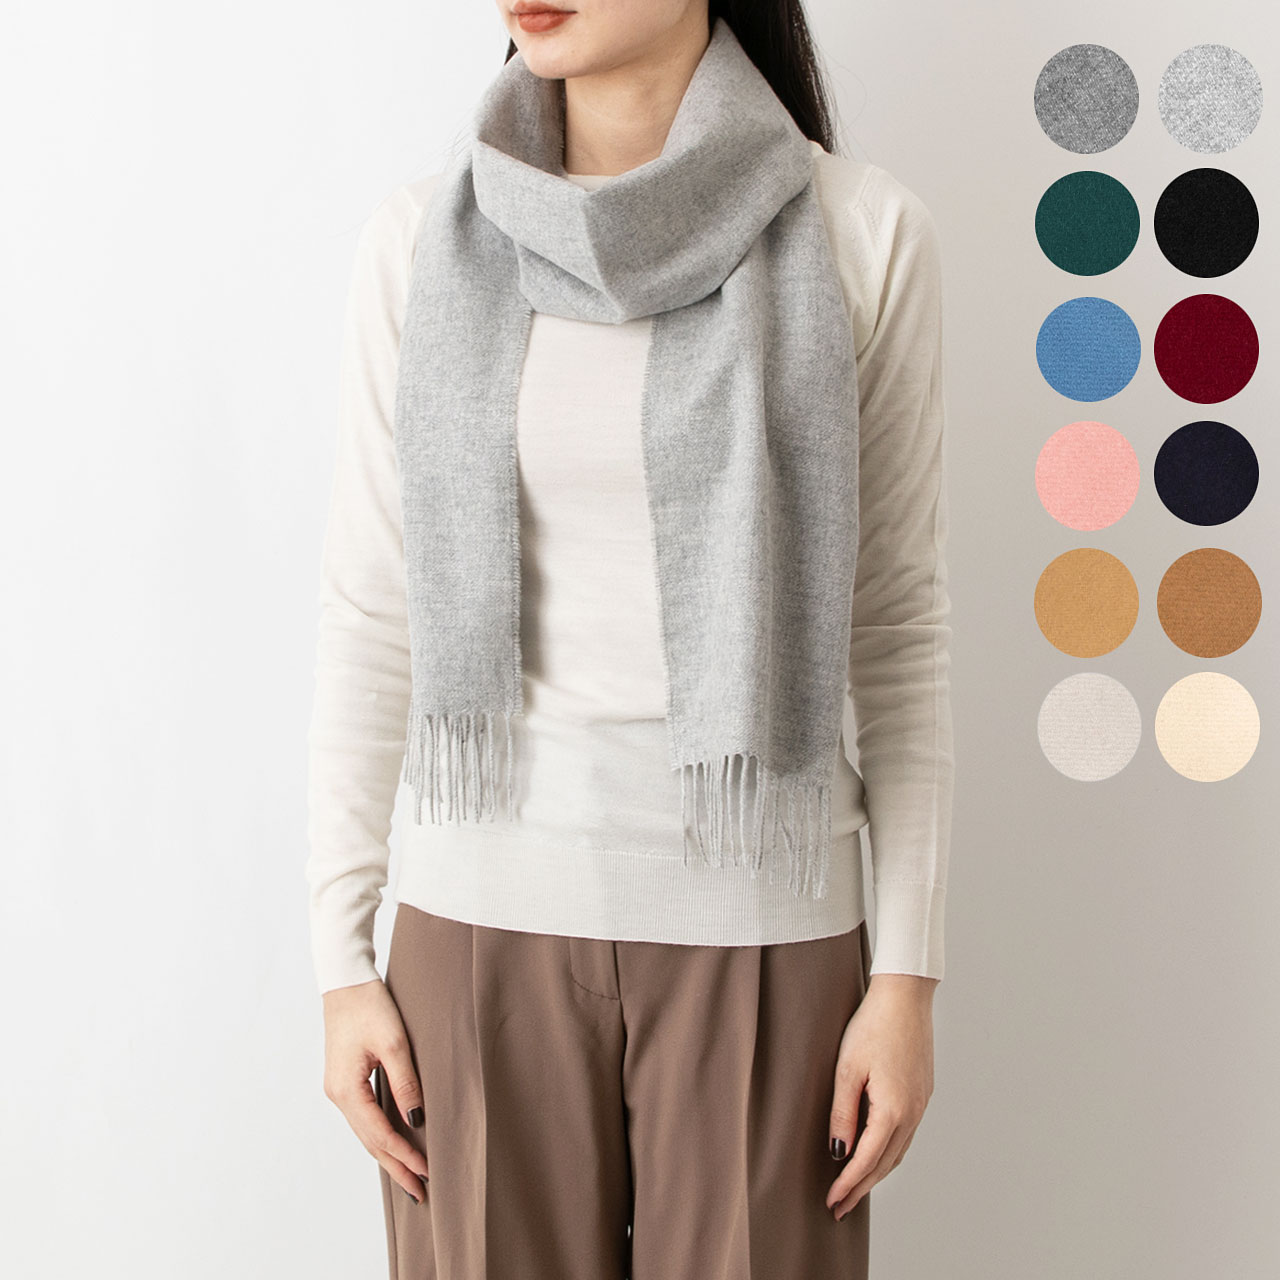 Johnstons And Of Elgin Cashmere Scarf Plains Wa000016 10 Colors